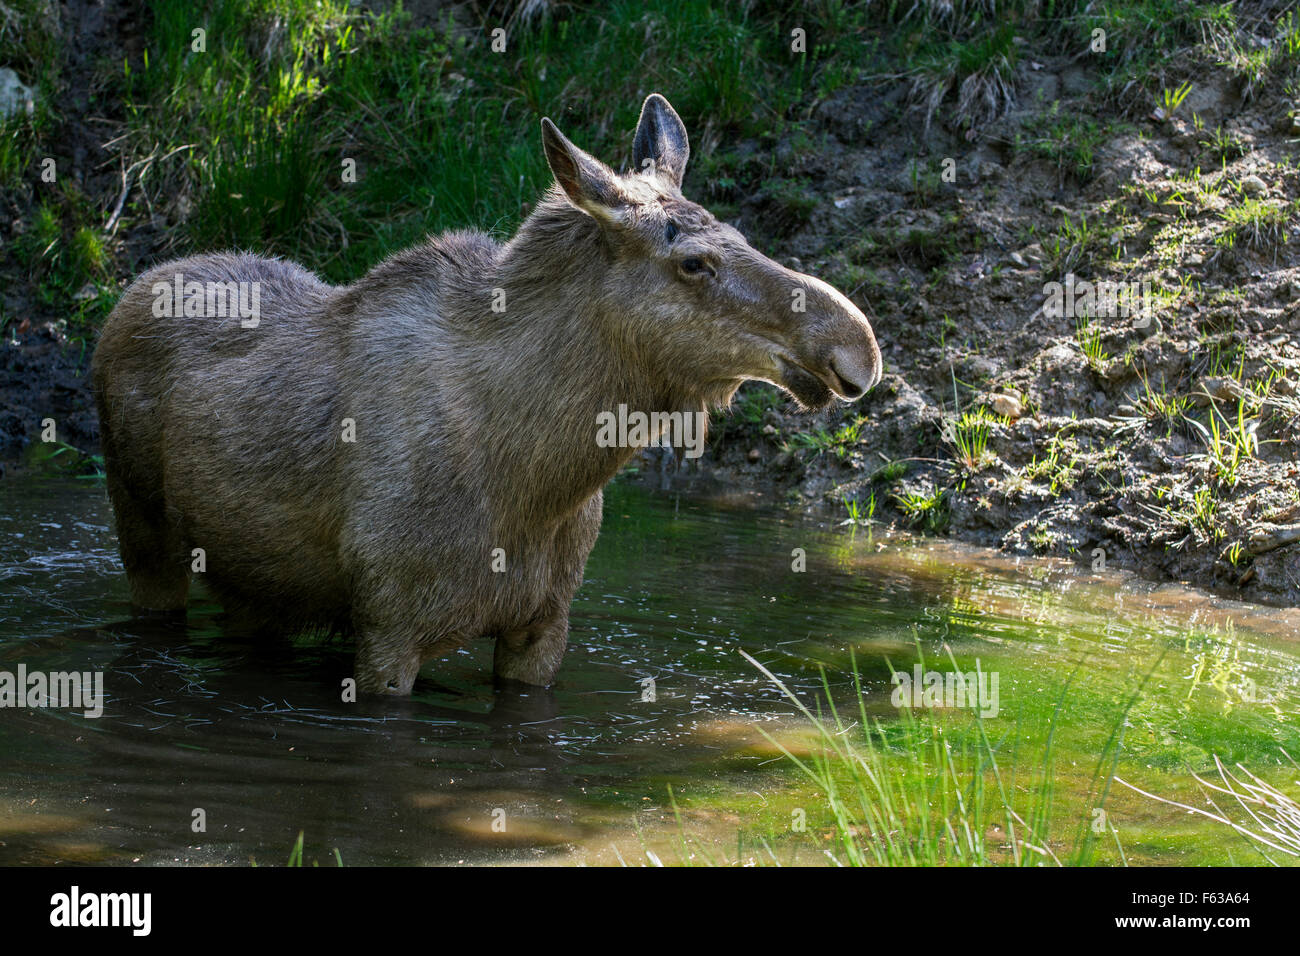 Moose (Alces alces) female / cow cooling down in water of pond on a hot day in summer - Stock Image